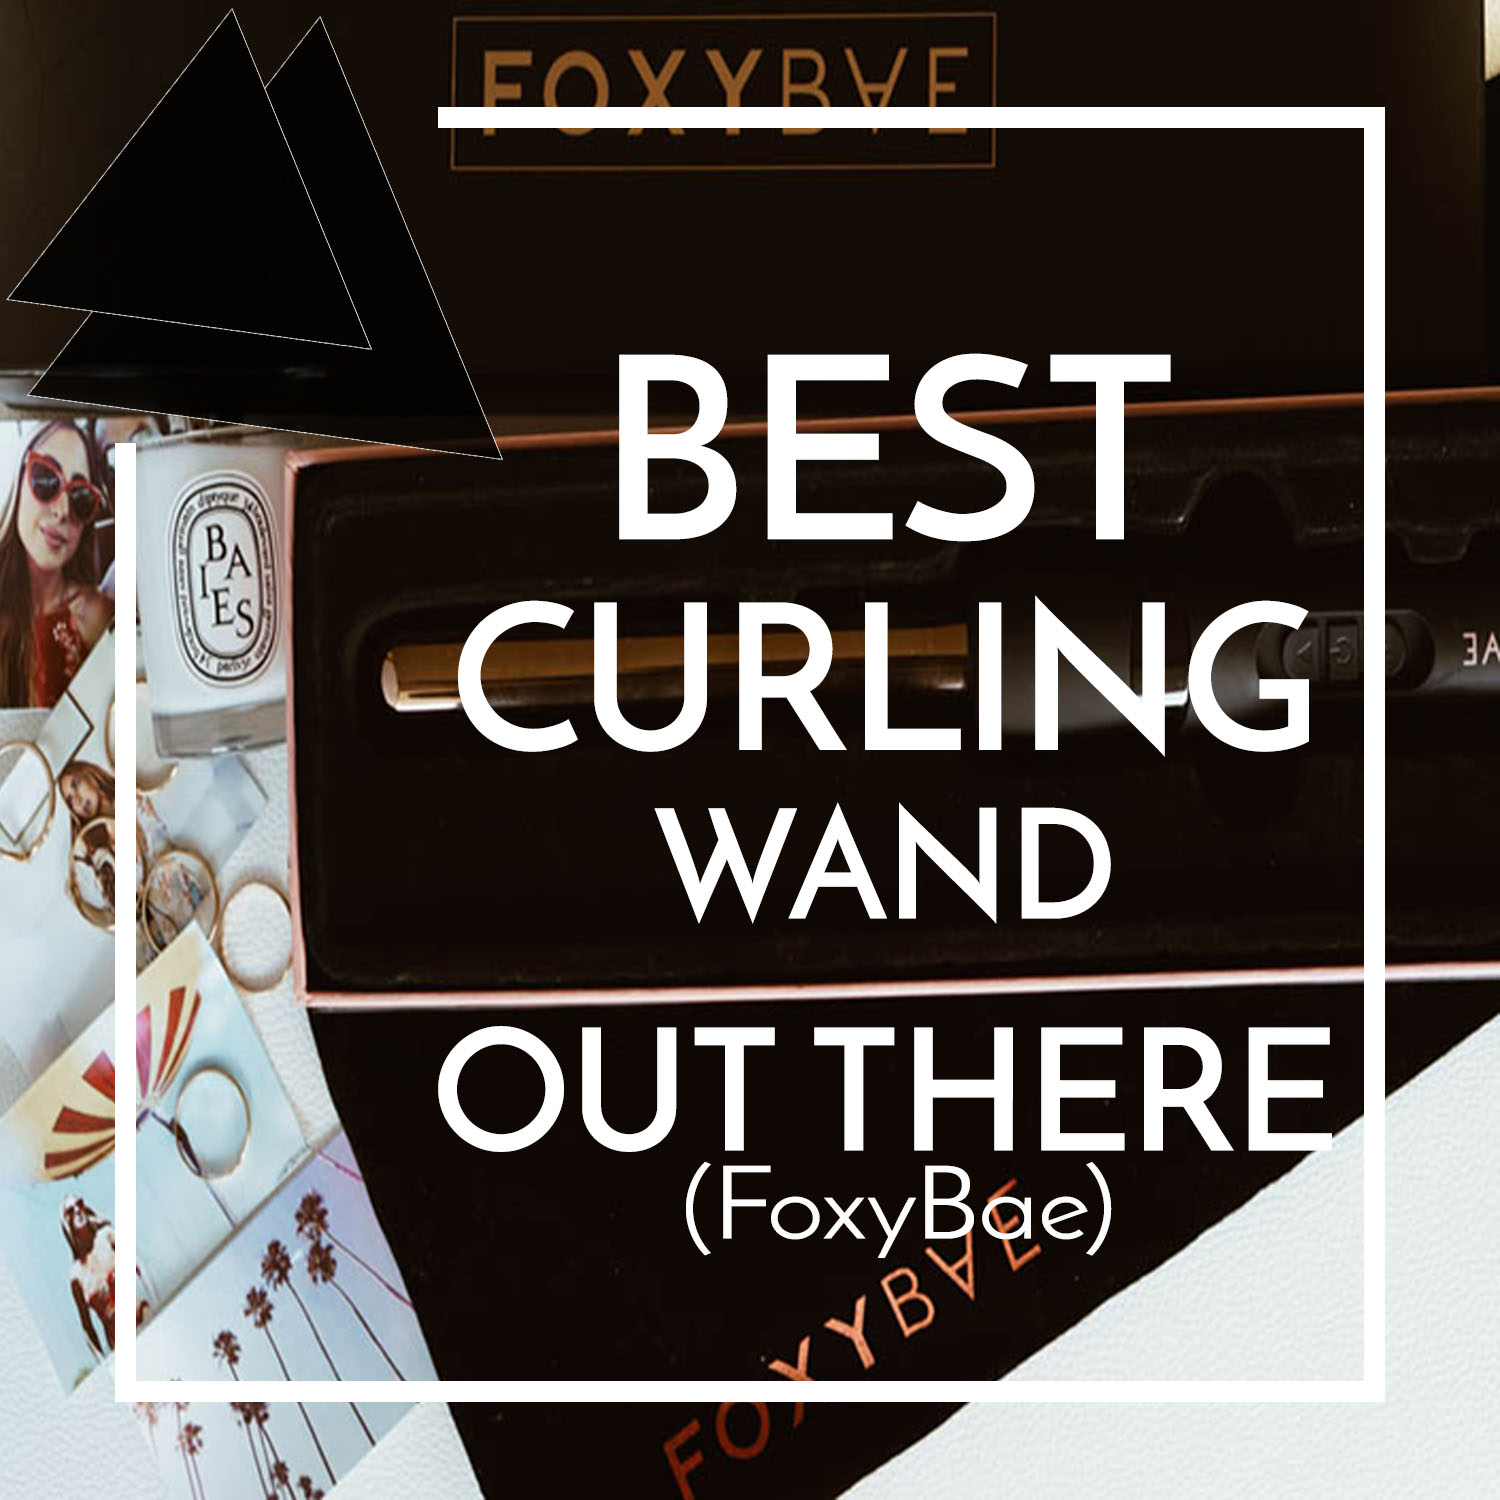 Best Curling Wand On The Market (FOXYBAE)